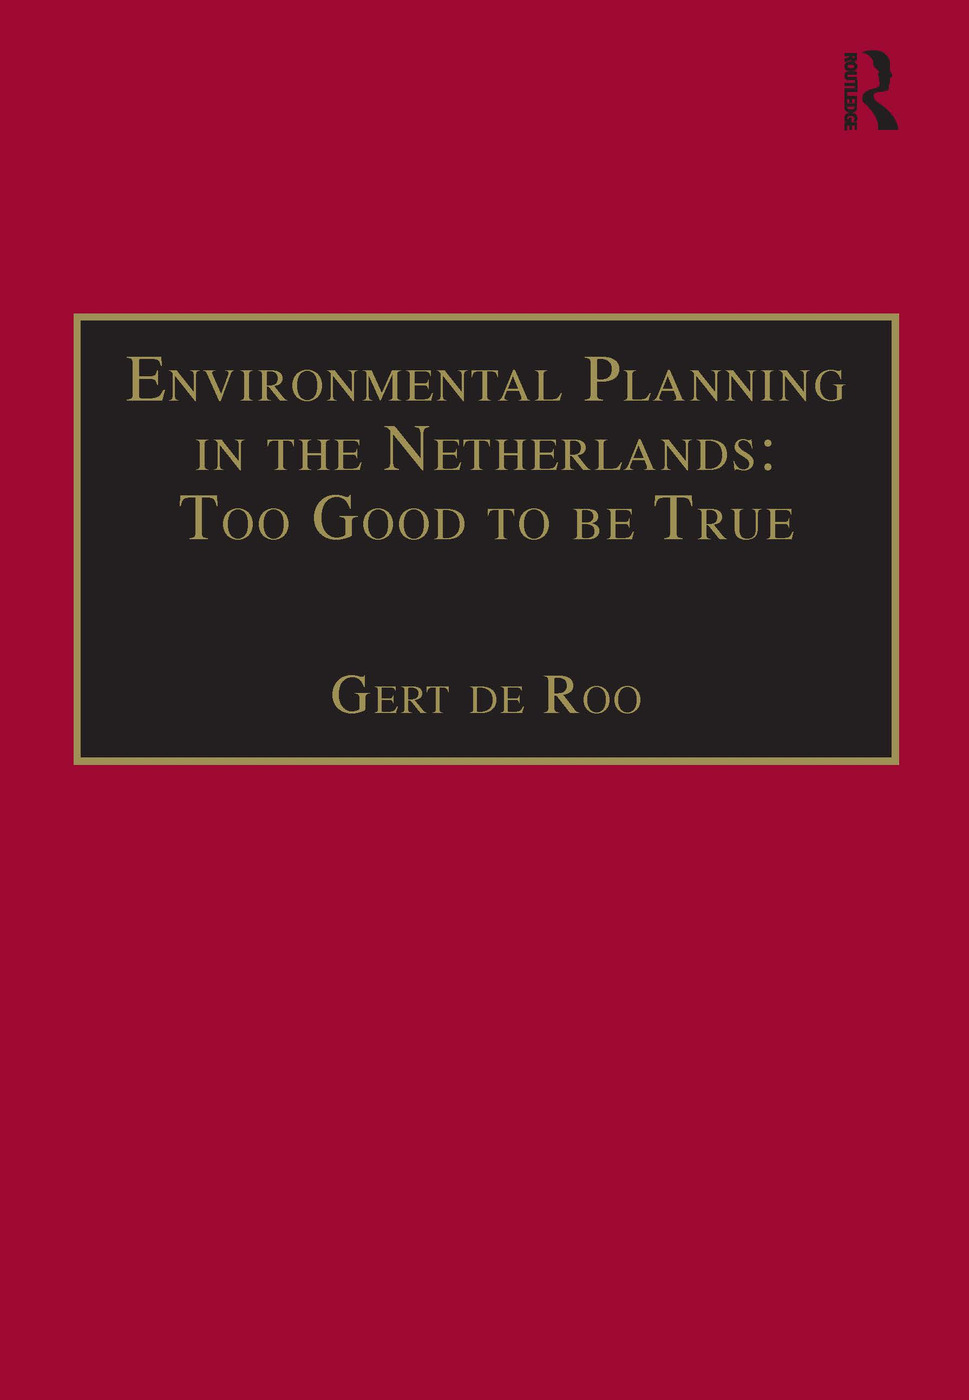 Environmental Planning in the Netherlands: Too Good to be True: From Command-and-Control Planning to Shared Governance, 1st Edition (Paperback) book cover